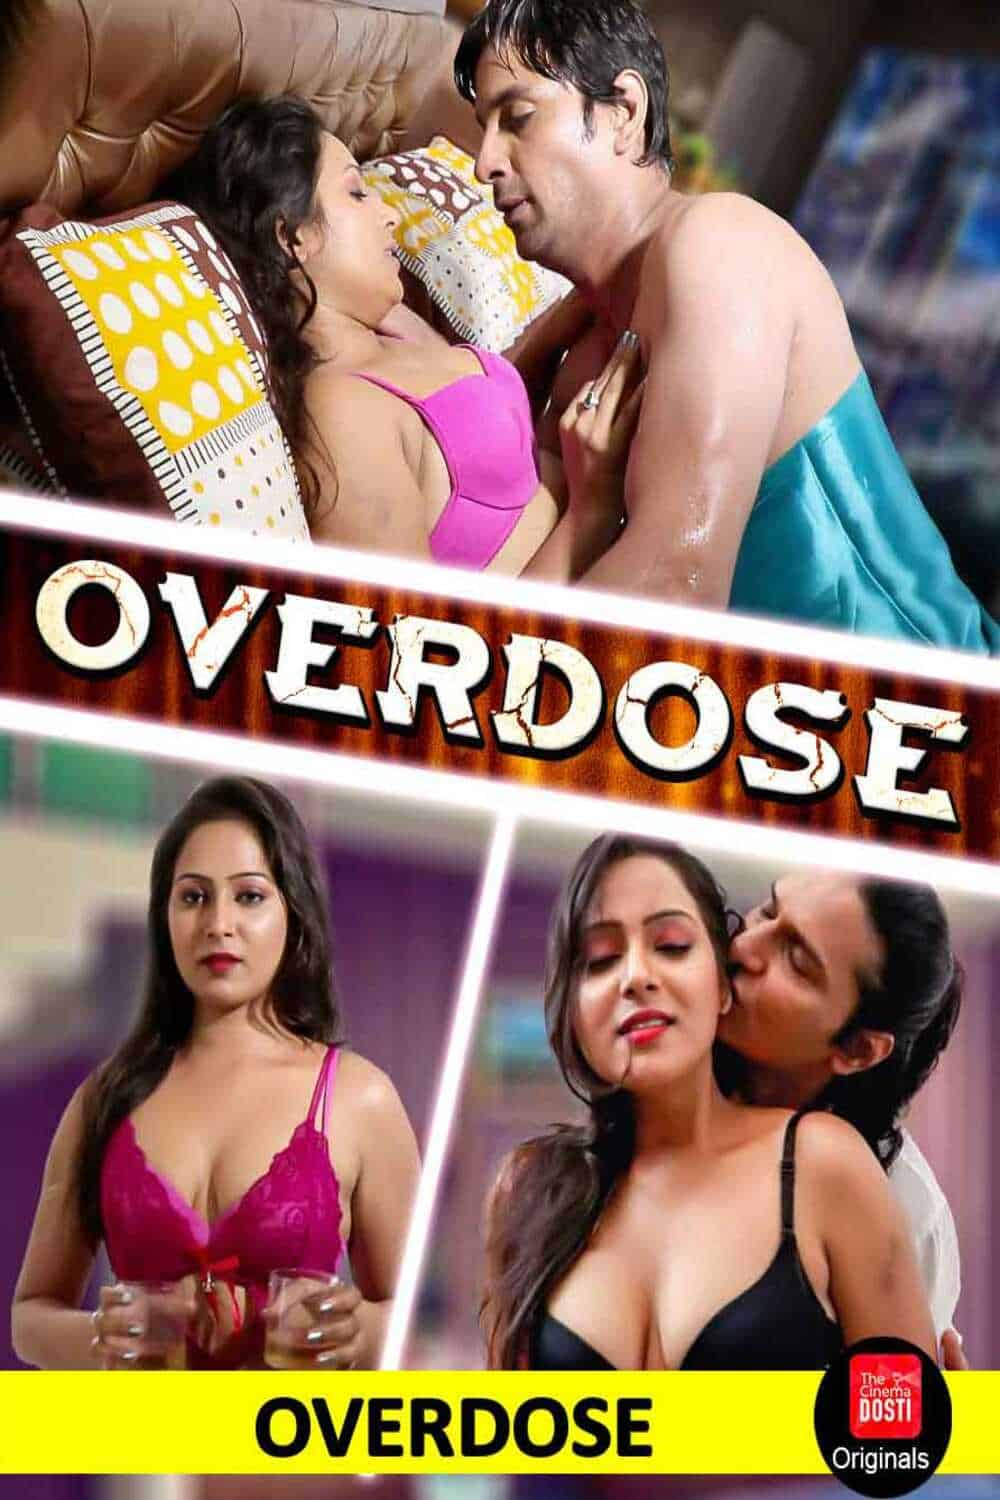 18+Overdose (2020) Hindi Short Film 720p Cinemadosti WEB-DL x264 200MB